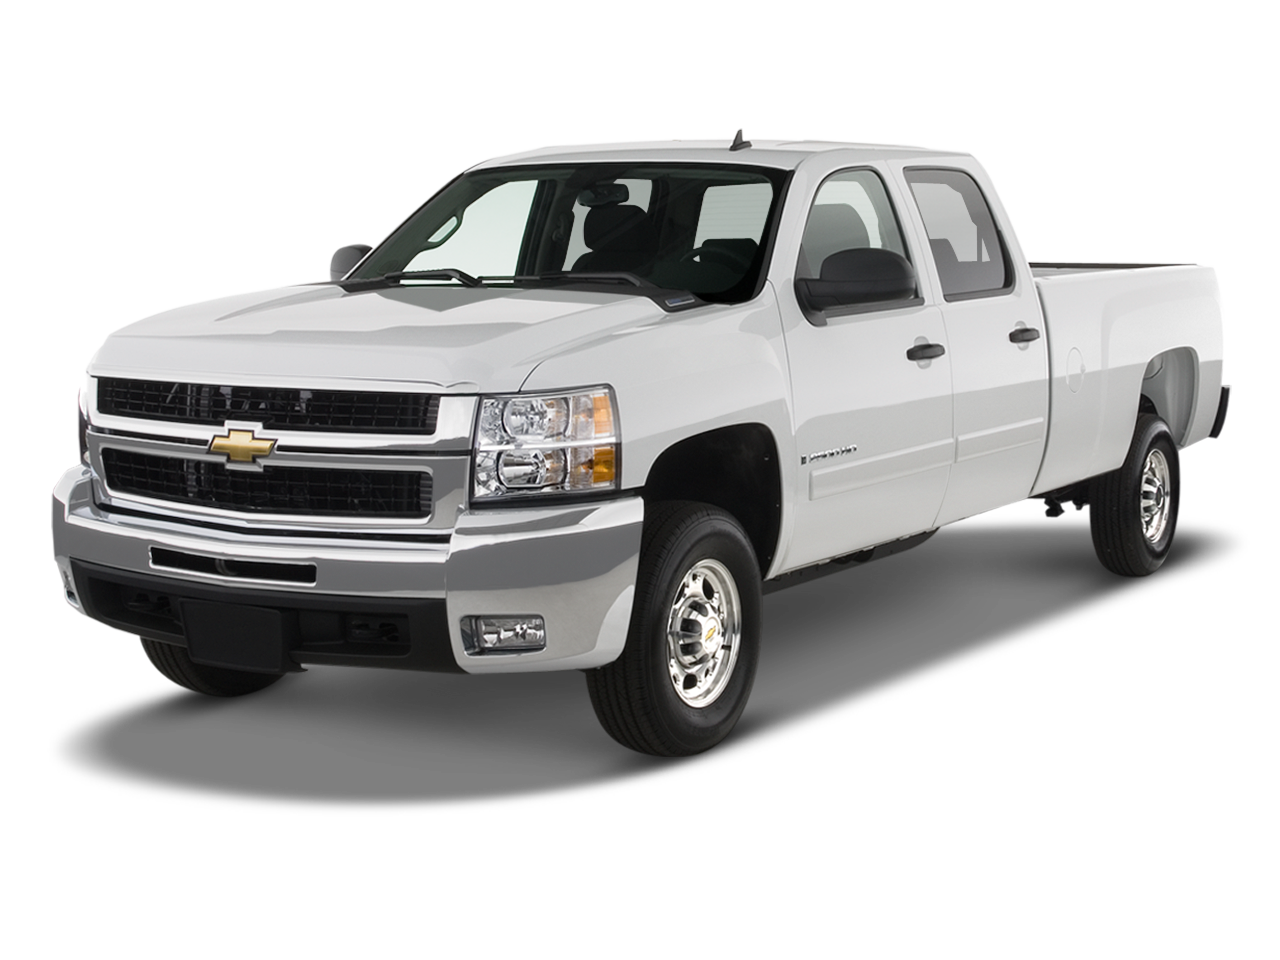 2007 chevrolet silverado 2500hd photos informations articles rh bestcarmag com